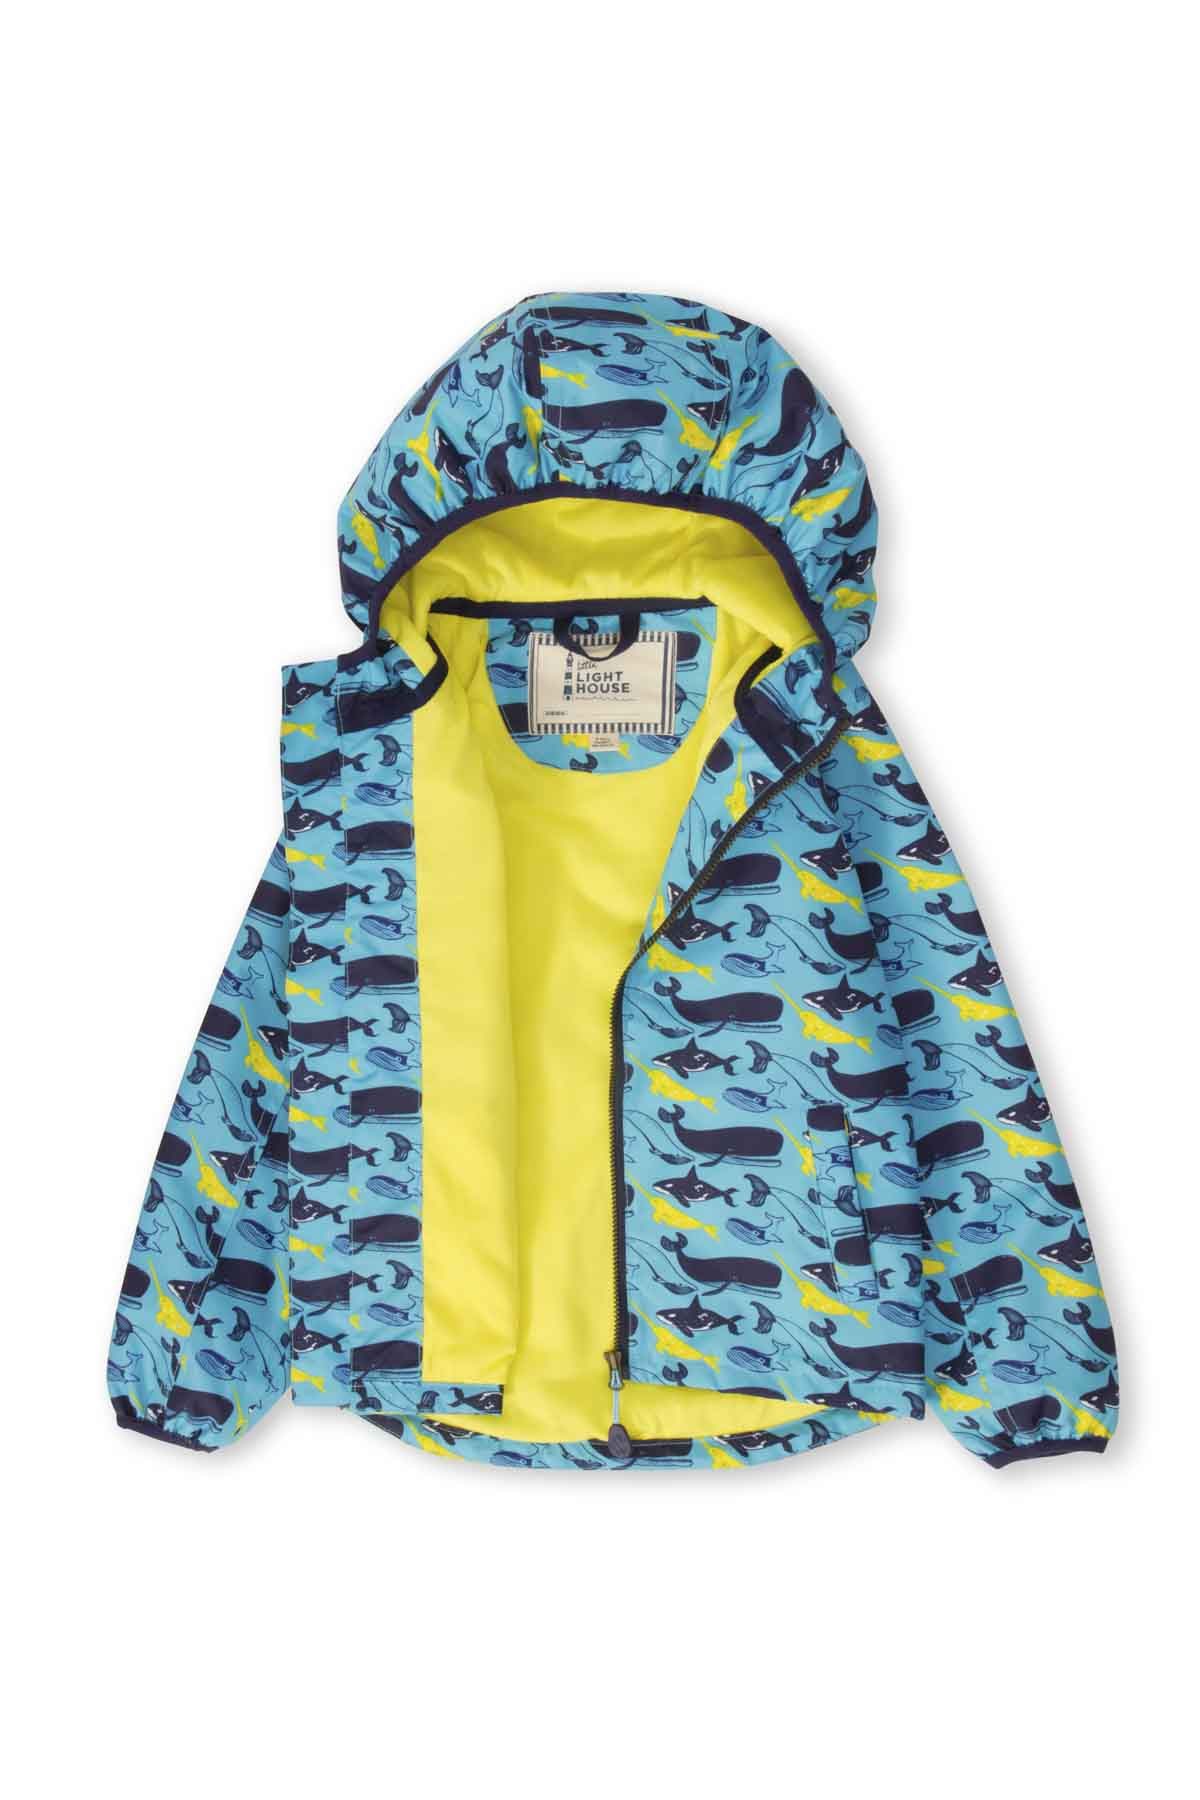 Lighthouse Atlantic Boy's Waterproof Jacket - Whale Print